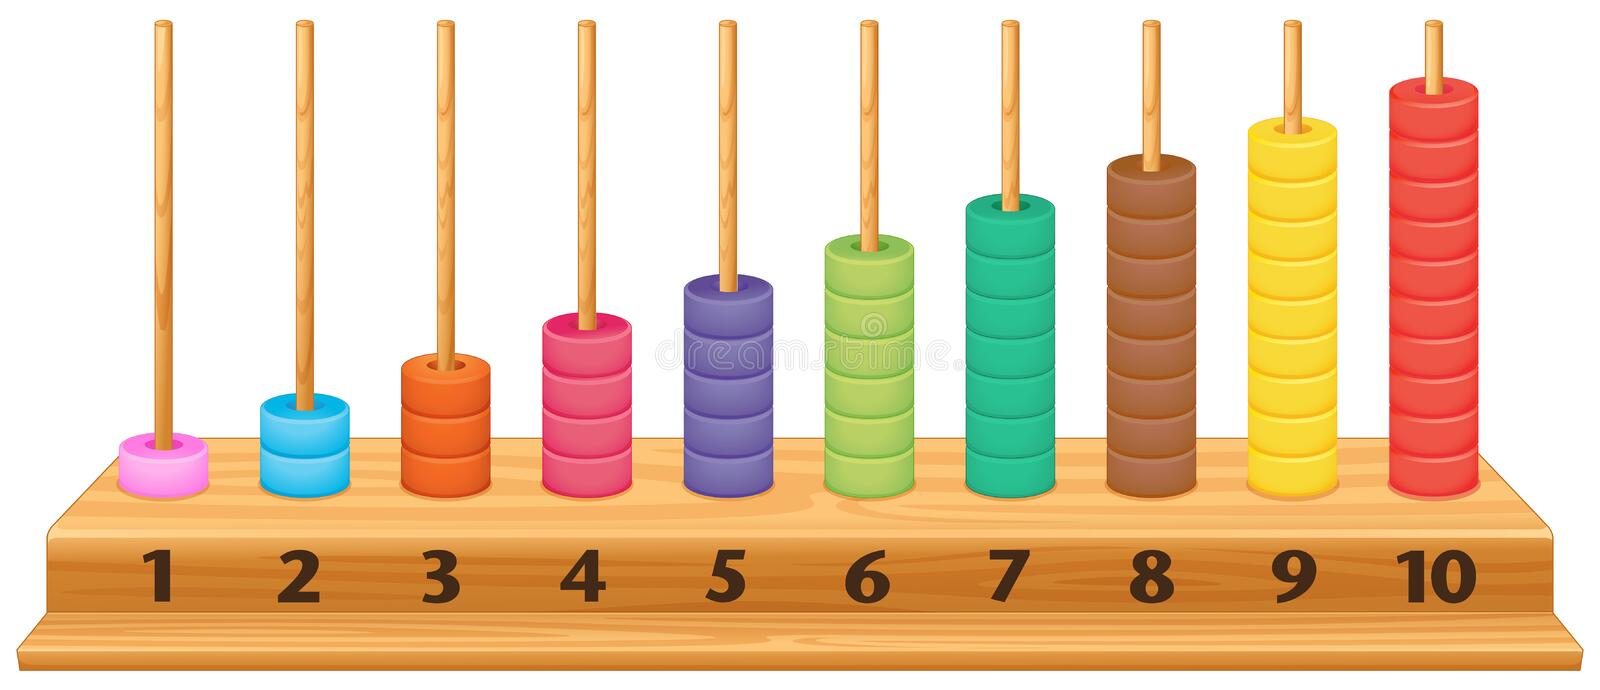 Colorful 1 to 10 abacus. Illustration stock illustration